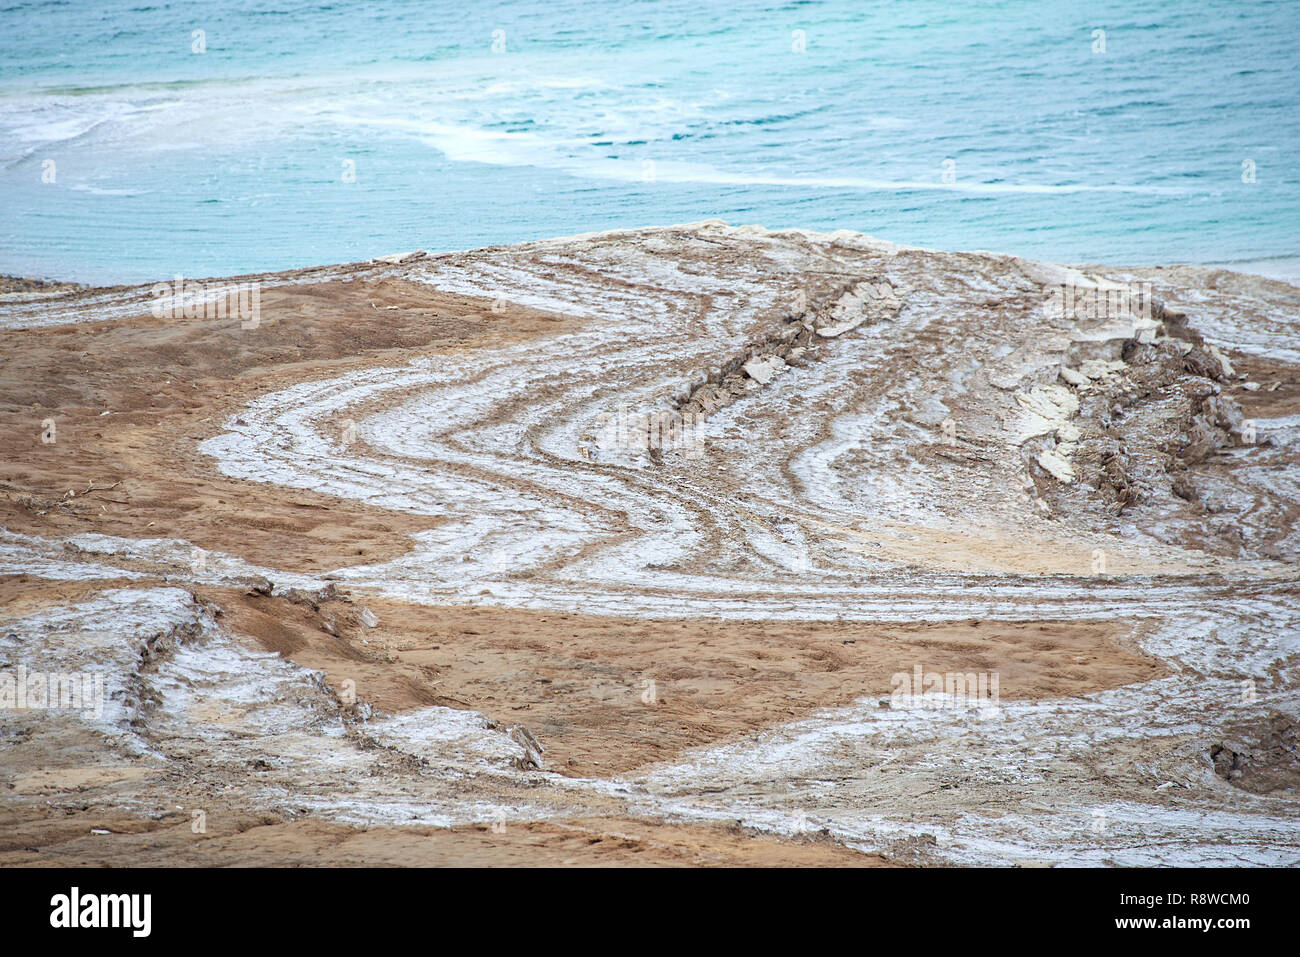 Landscape of the Dead Sea,Jordan, beautiful coast failures of the soil and the strong shallowing of the sea,illustrating an environmental catastrophe - Stock Image